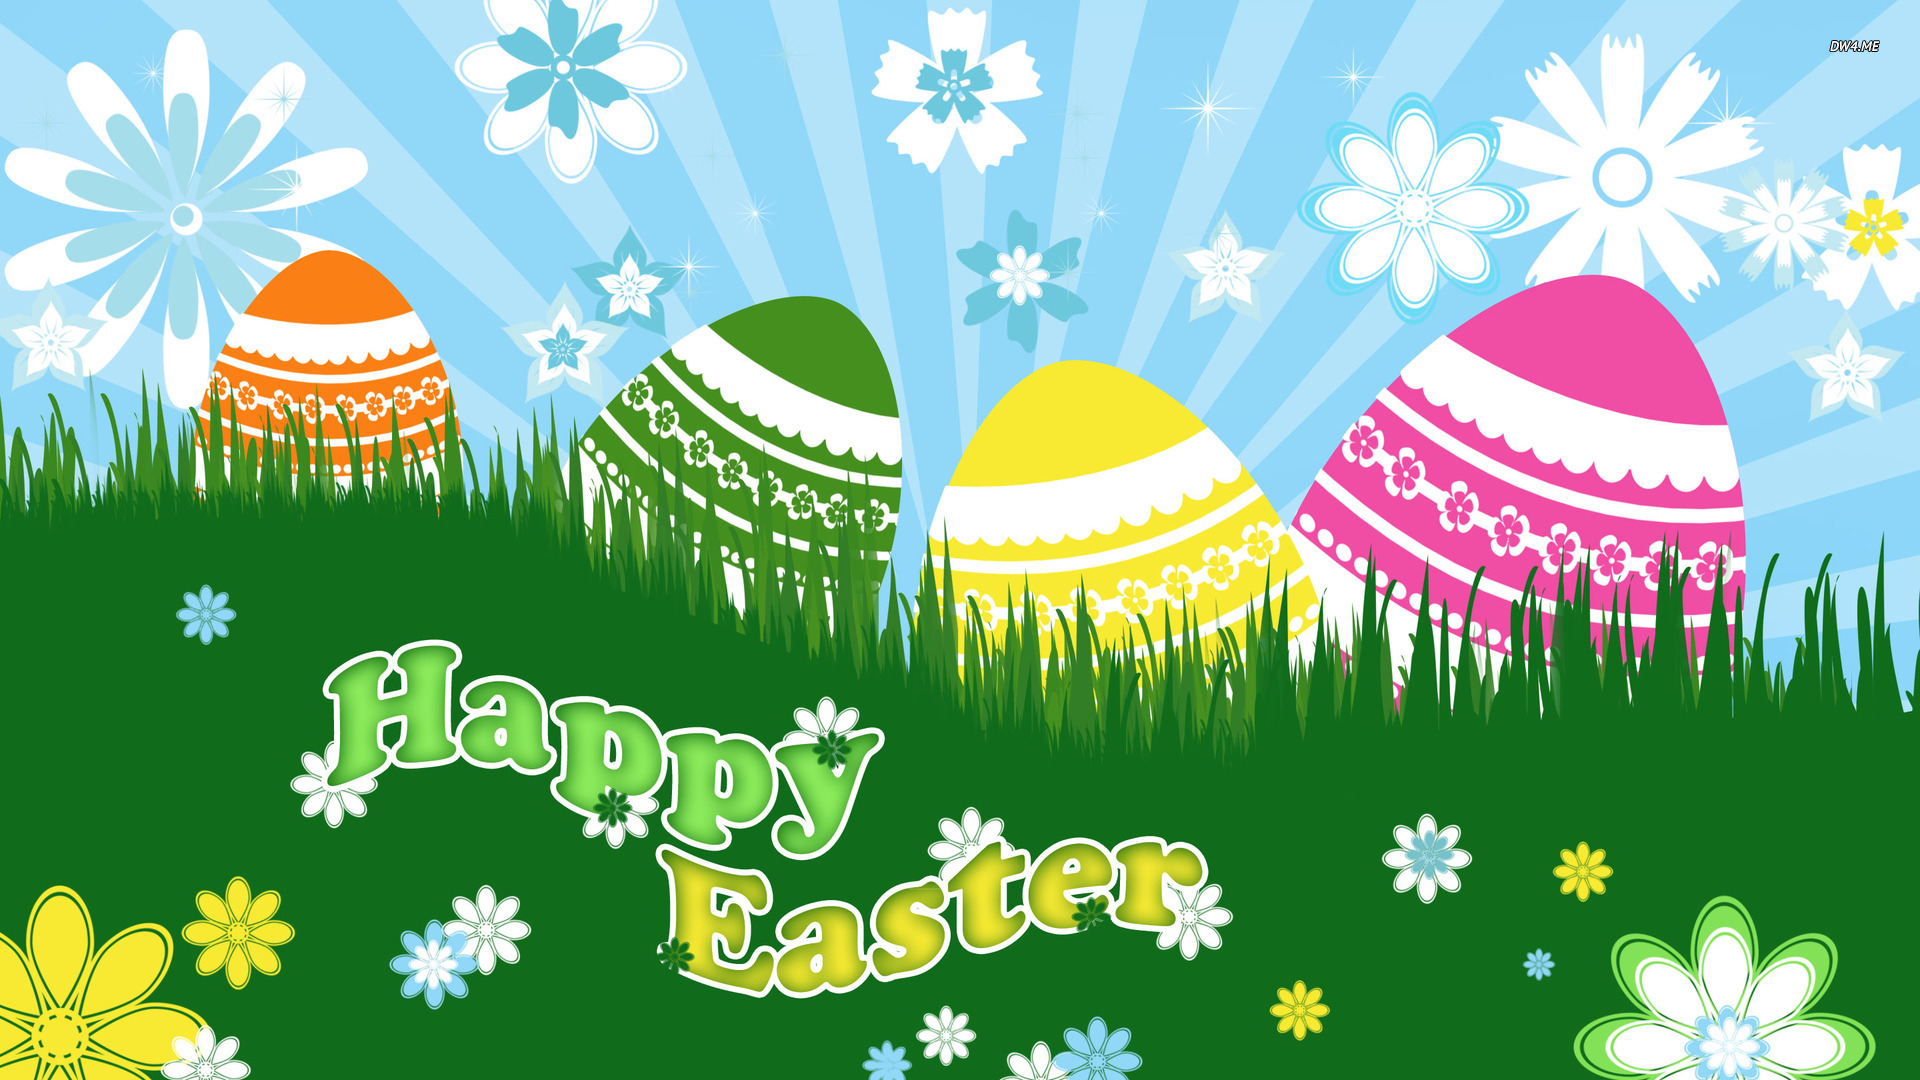 Happy Easter wallpaper   Holiday wallpapers   1251 1920x1080